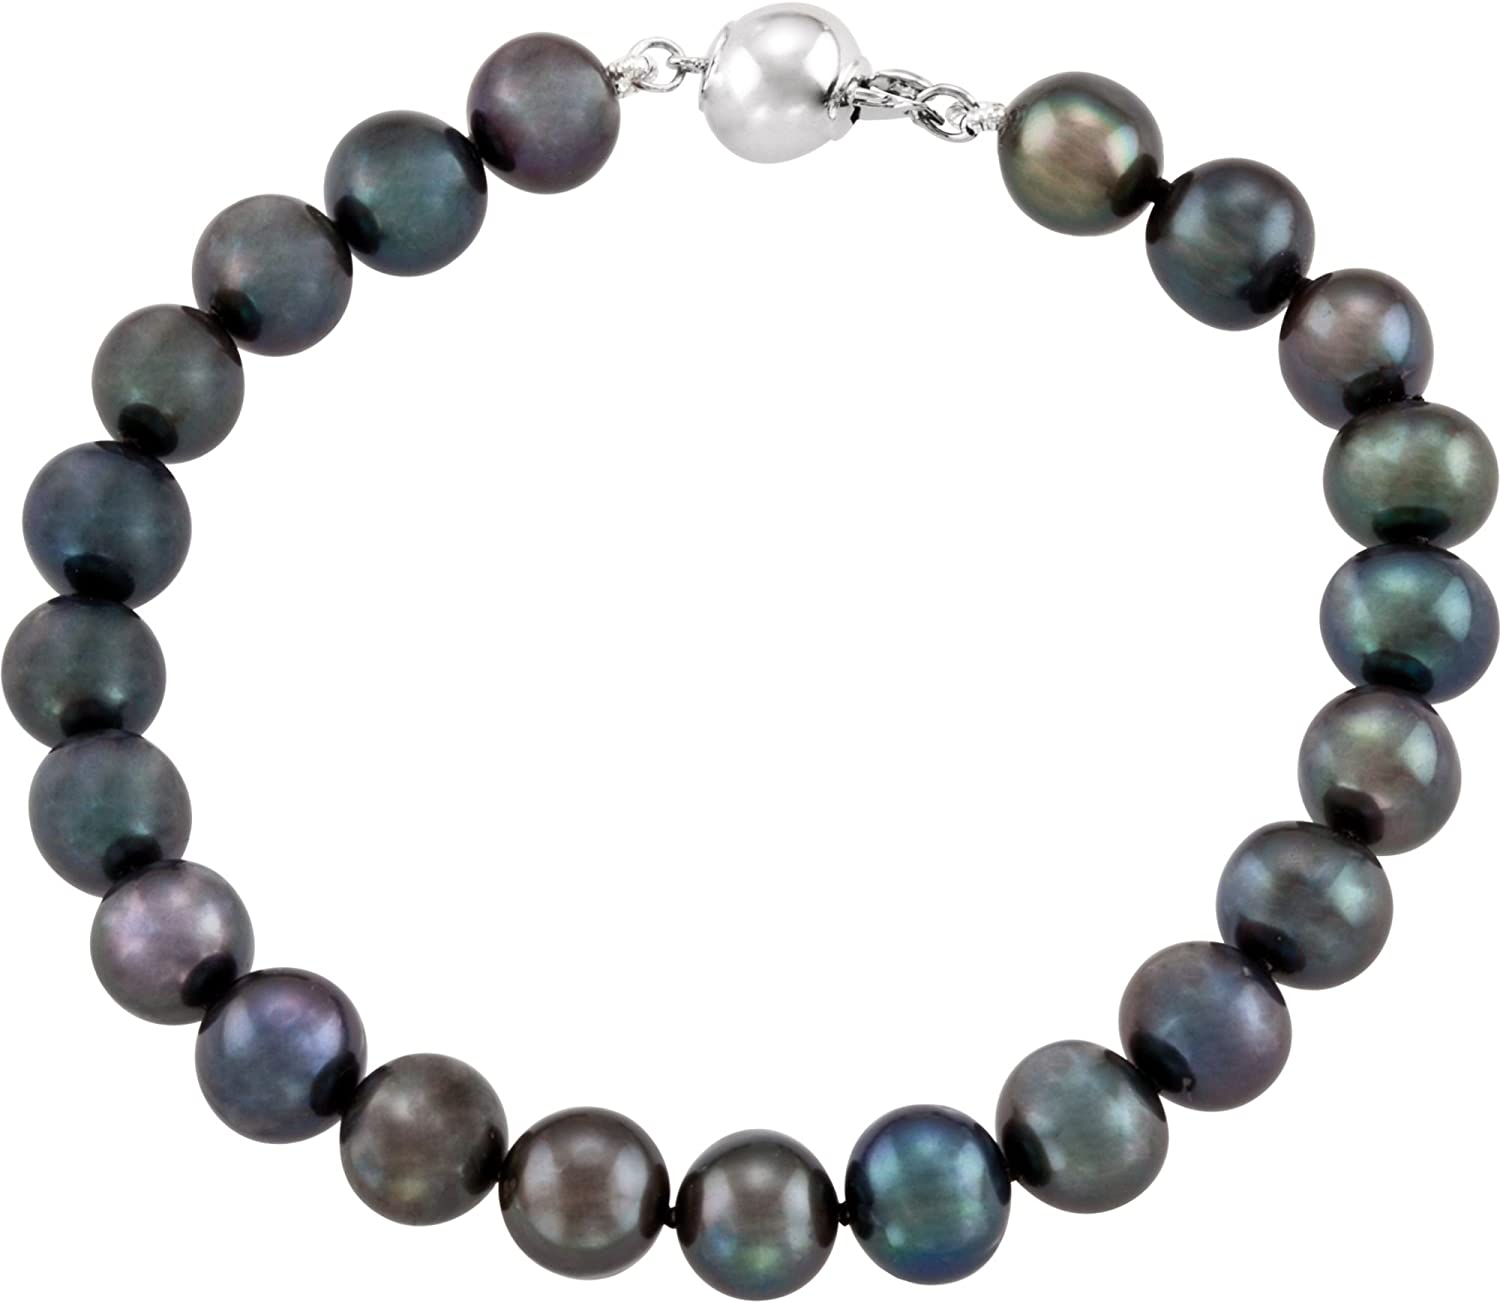 Freshwater Cultured Black Pearl Strand in Sterling Silver